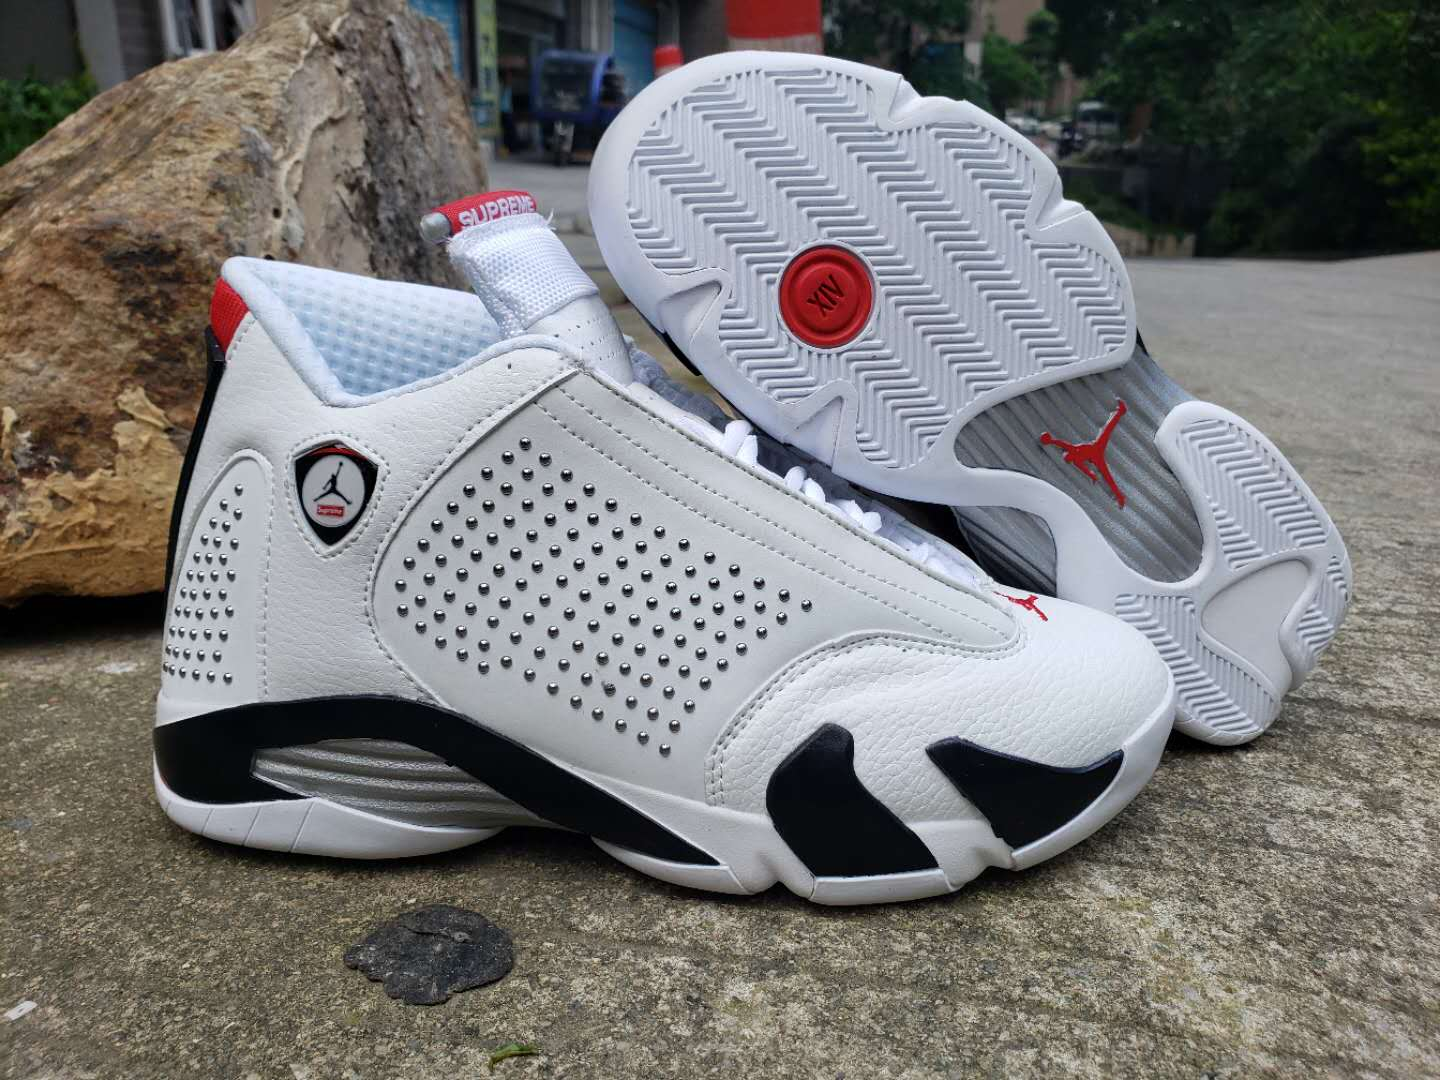 2019 Men Supreme x Air Jordan 14 White Black Red Shoes